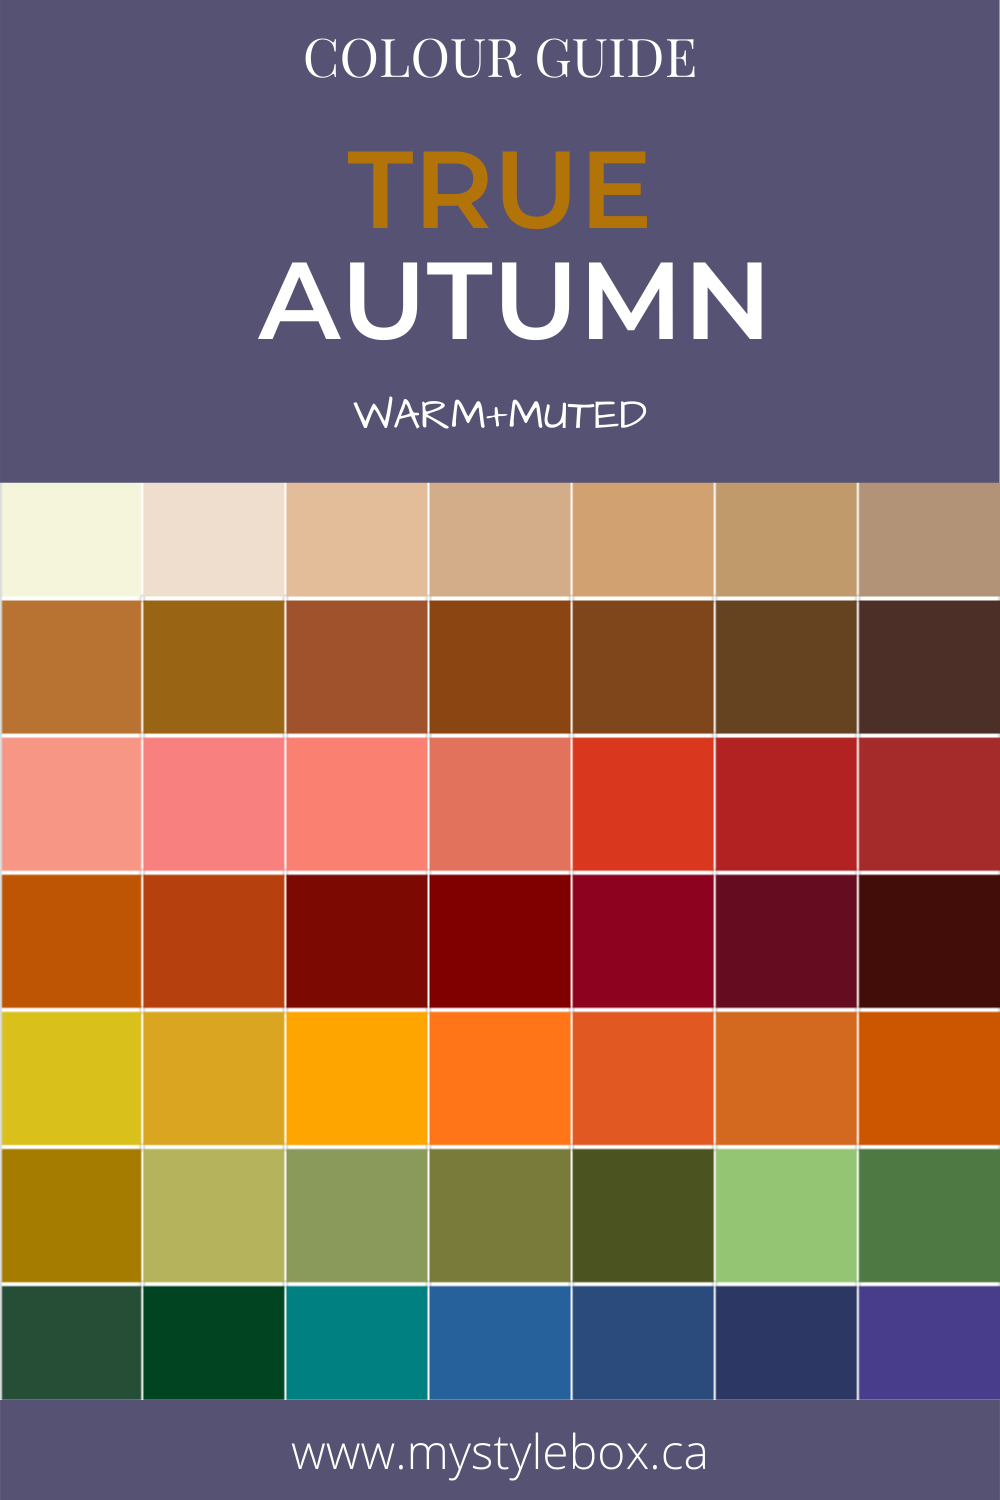 True Autumn Colour Guide